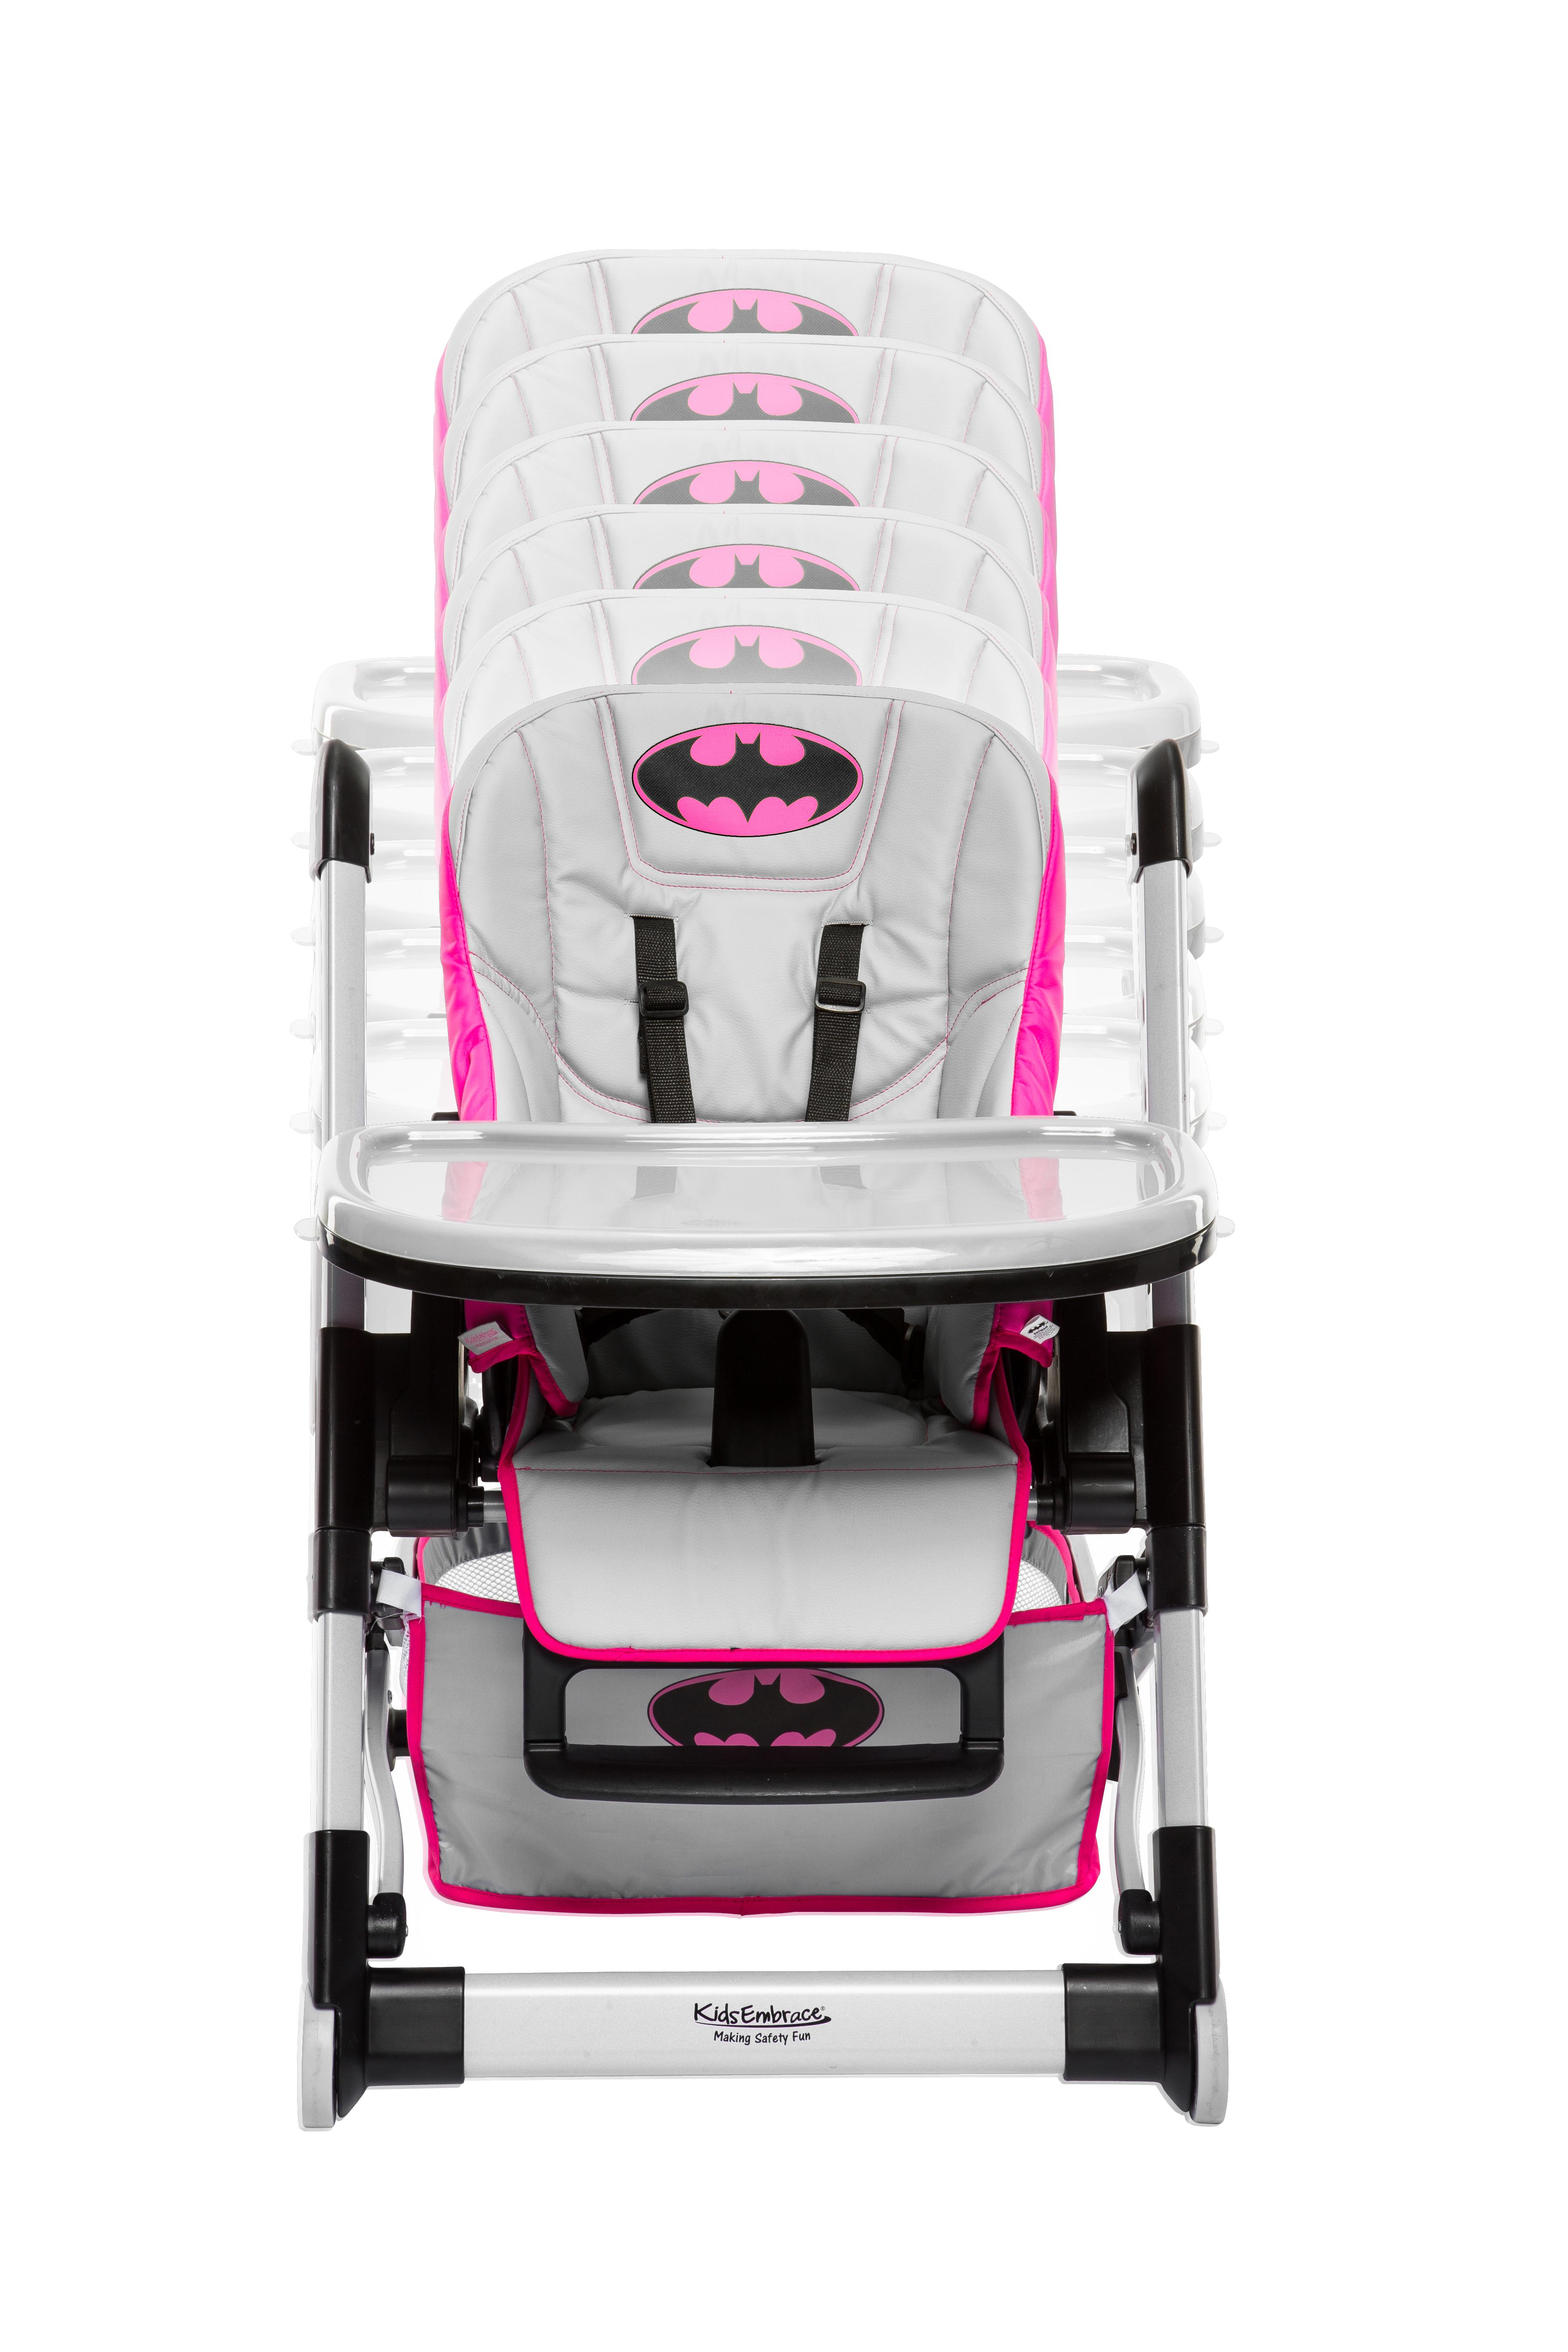 wb kidsembrace batgirl deluxe high chair baby. Black Bedroom Furniture Sets. Home Design Ideas